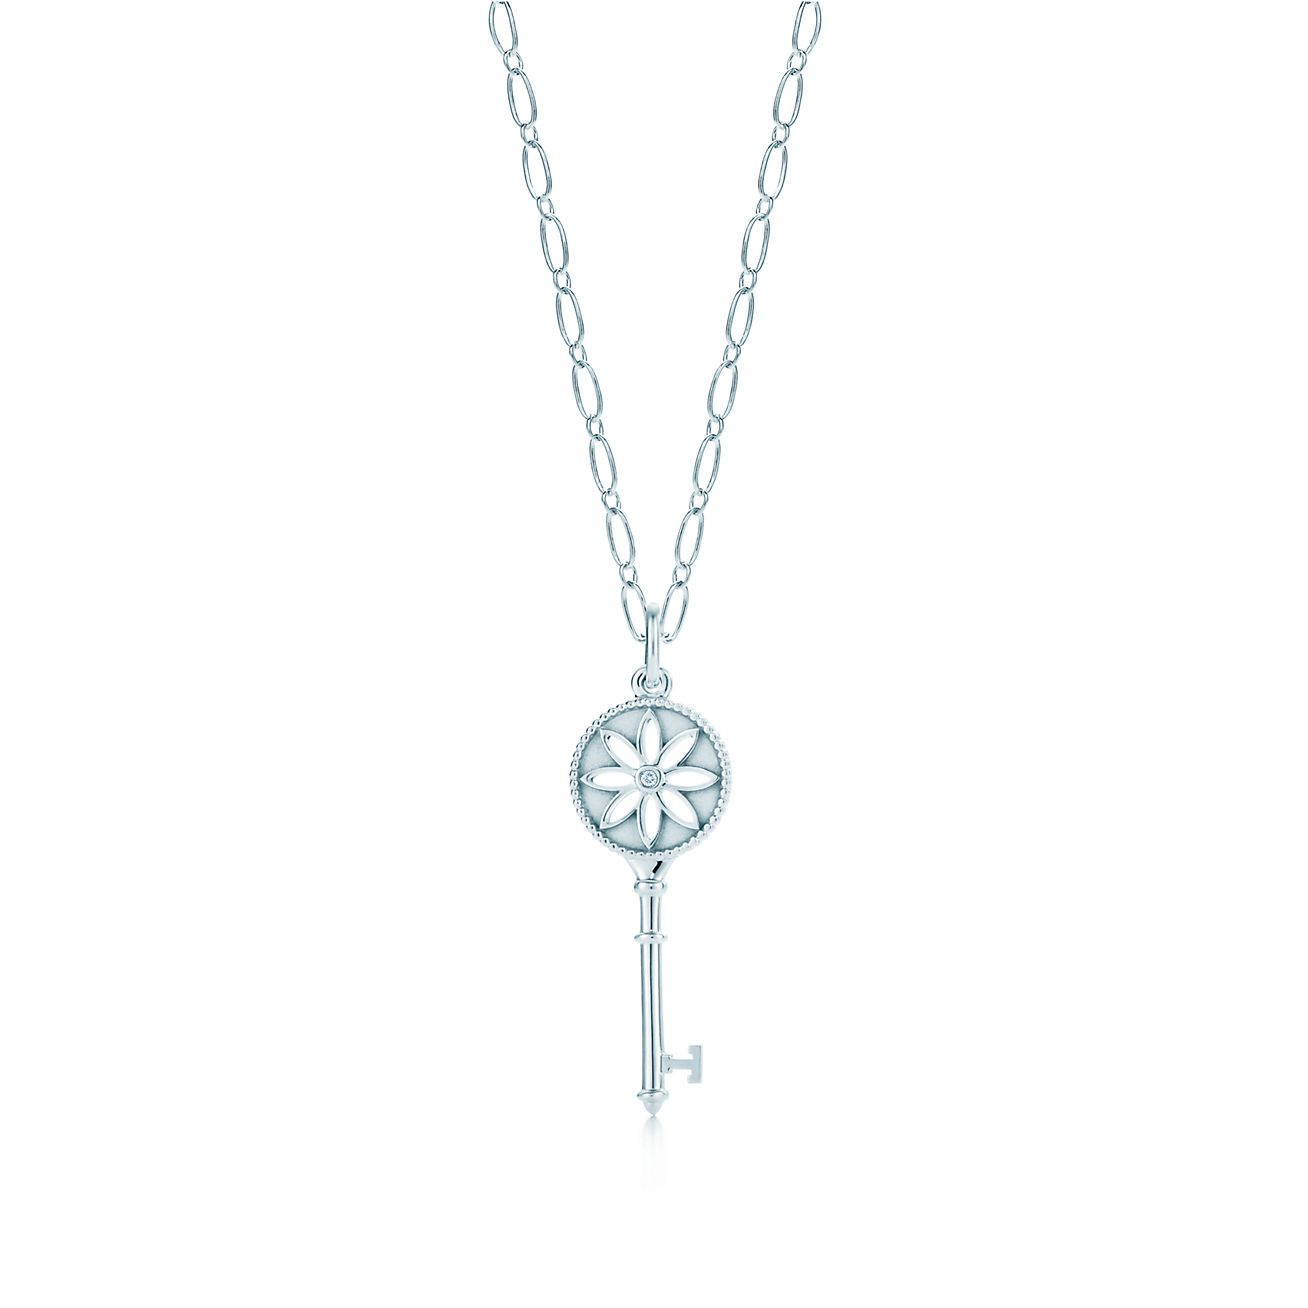 Tiffany Keys Daisy Key Pendant